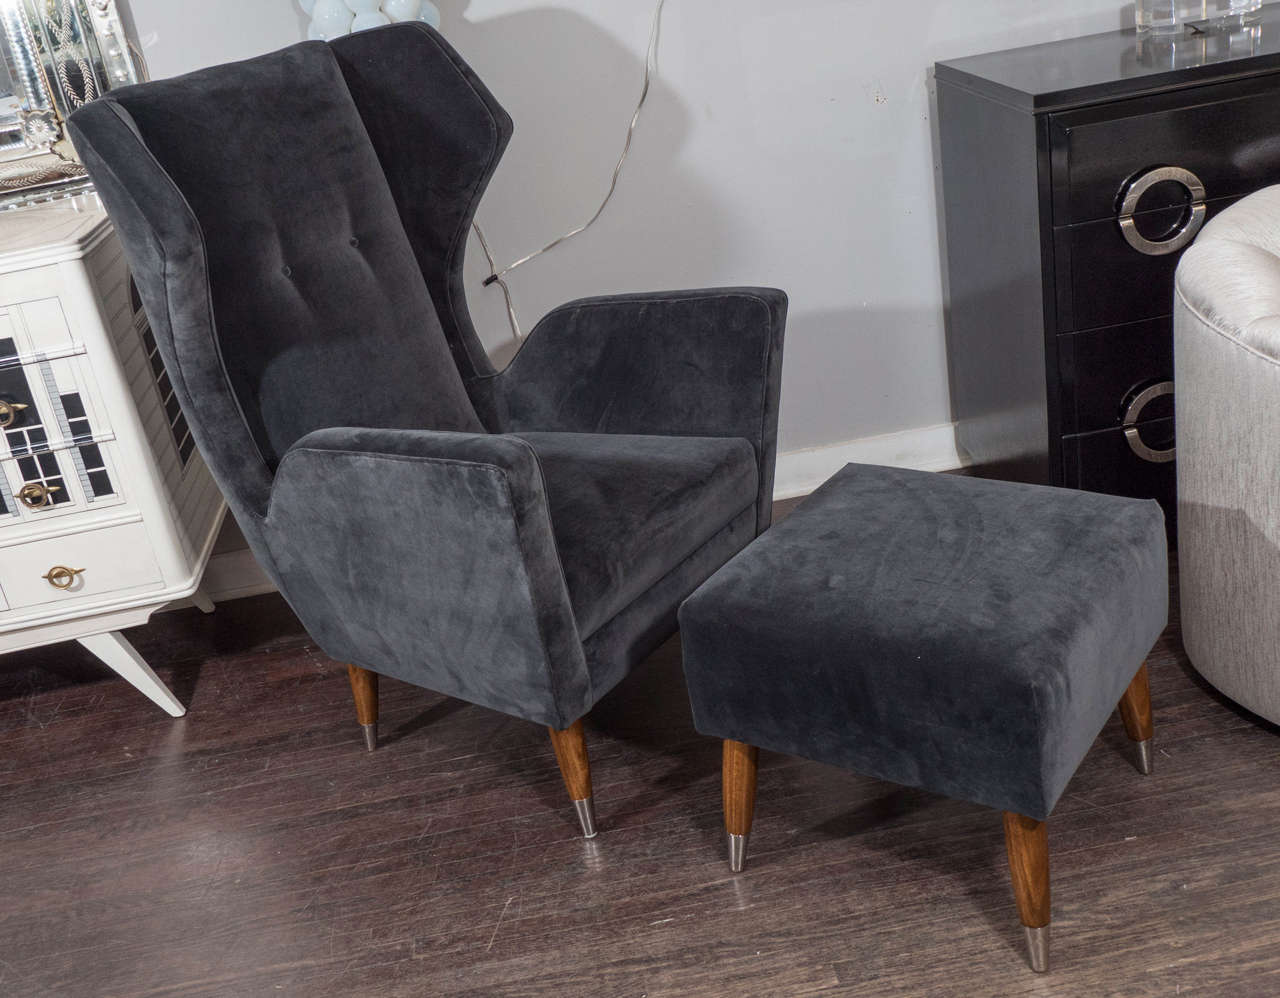 Custom Gio Ponti style chair and ottoman.